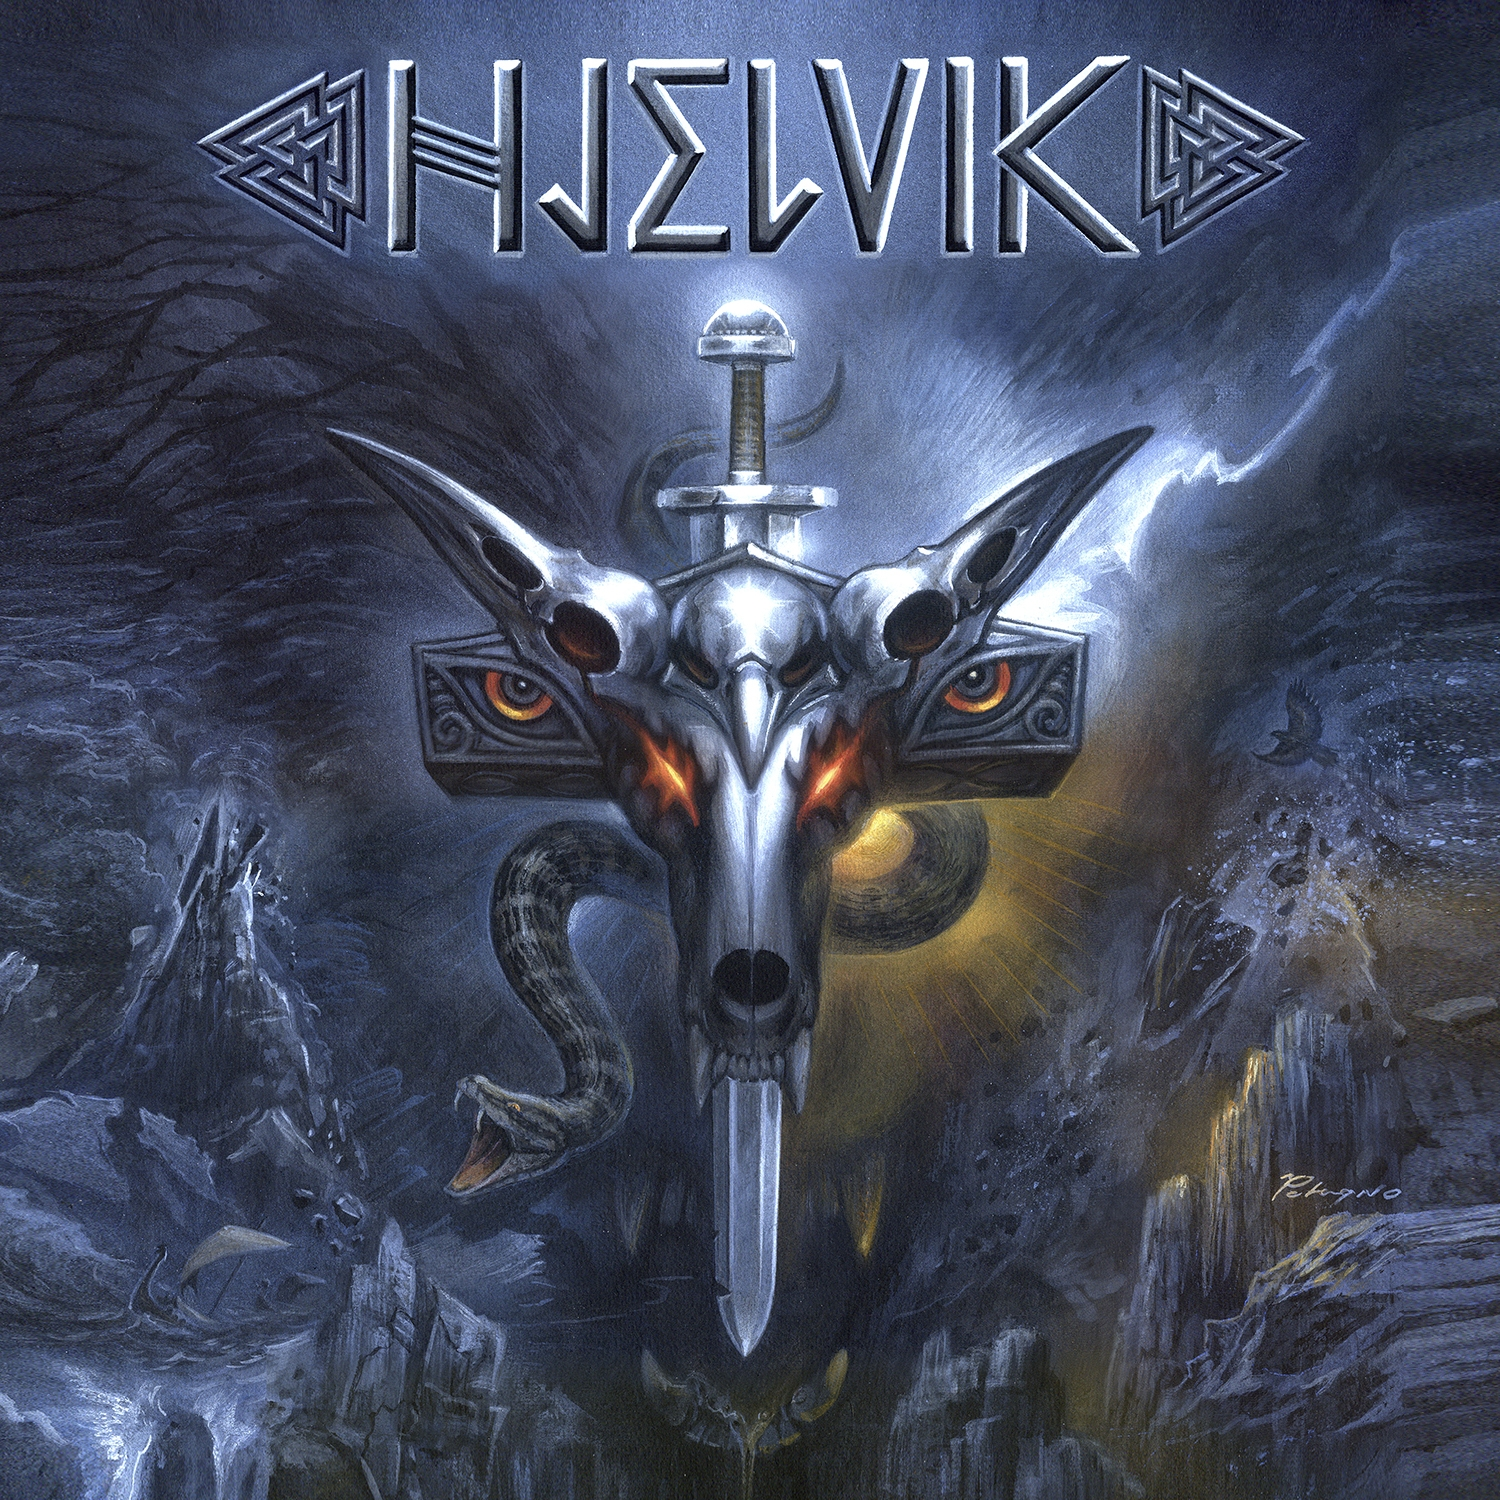 REVIEW: Hjelvik – Welcome to Hel